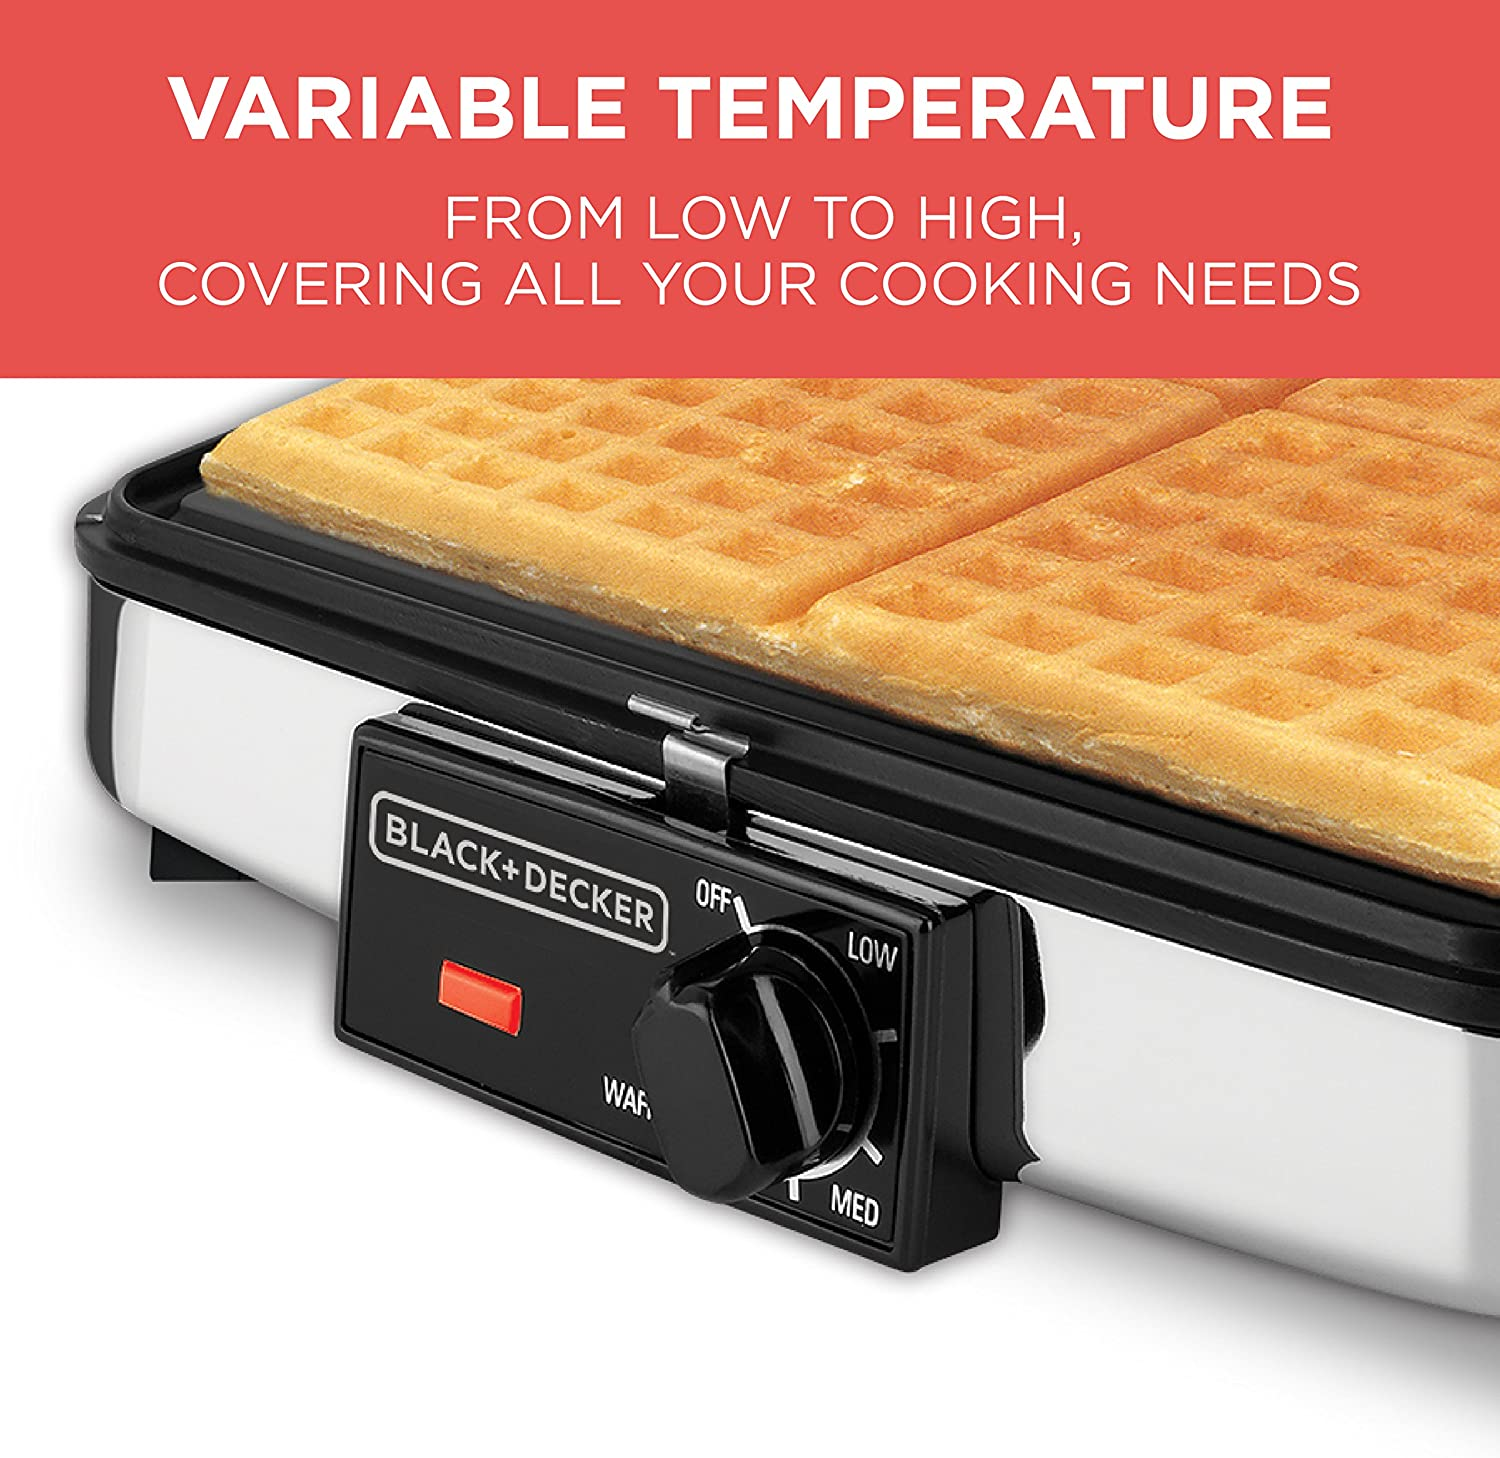 BLACK+DECKER 3-in-1 Waffle Maker with Nonstick Reversible Plates, Stainless Steel, G48TD: Electric Waffle Irons: Kitchen & Dining